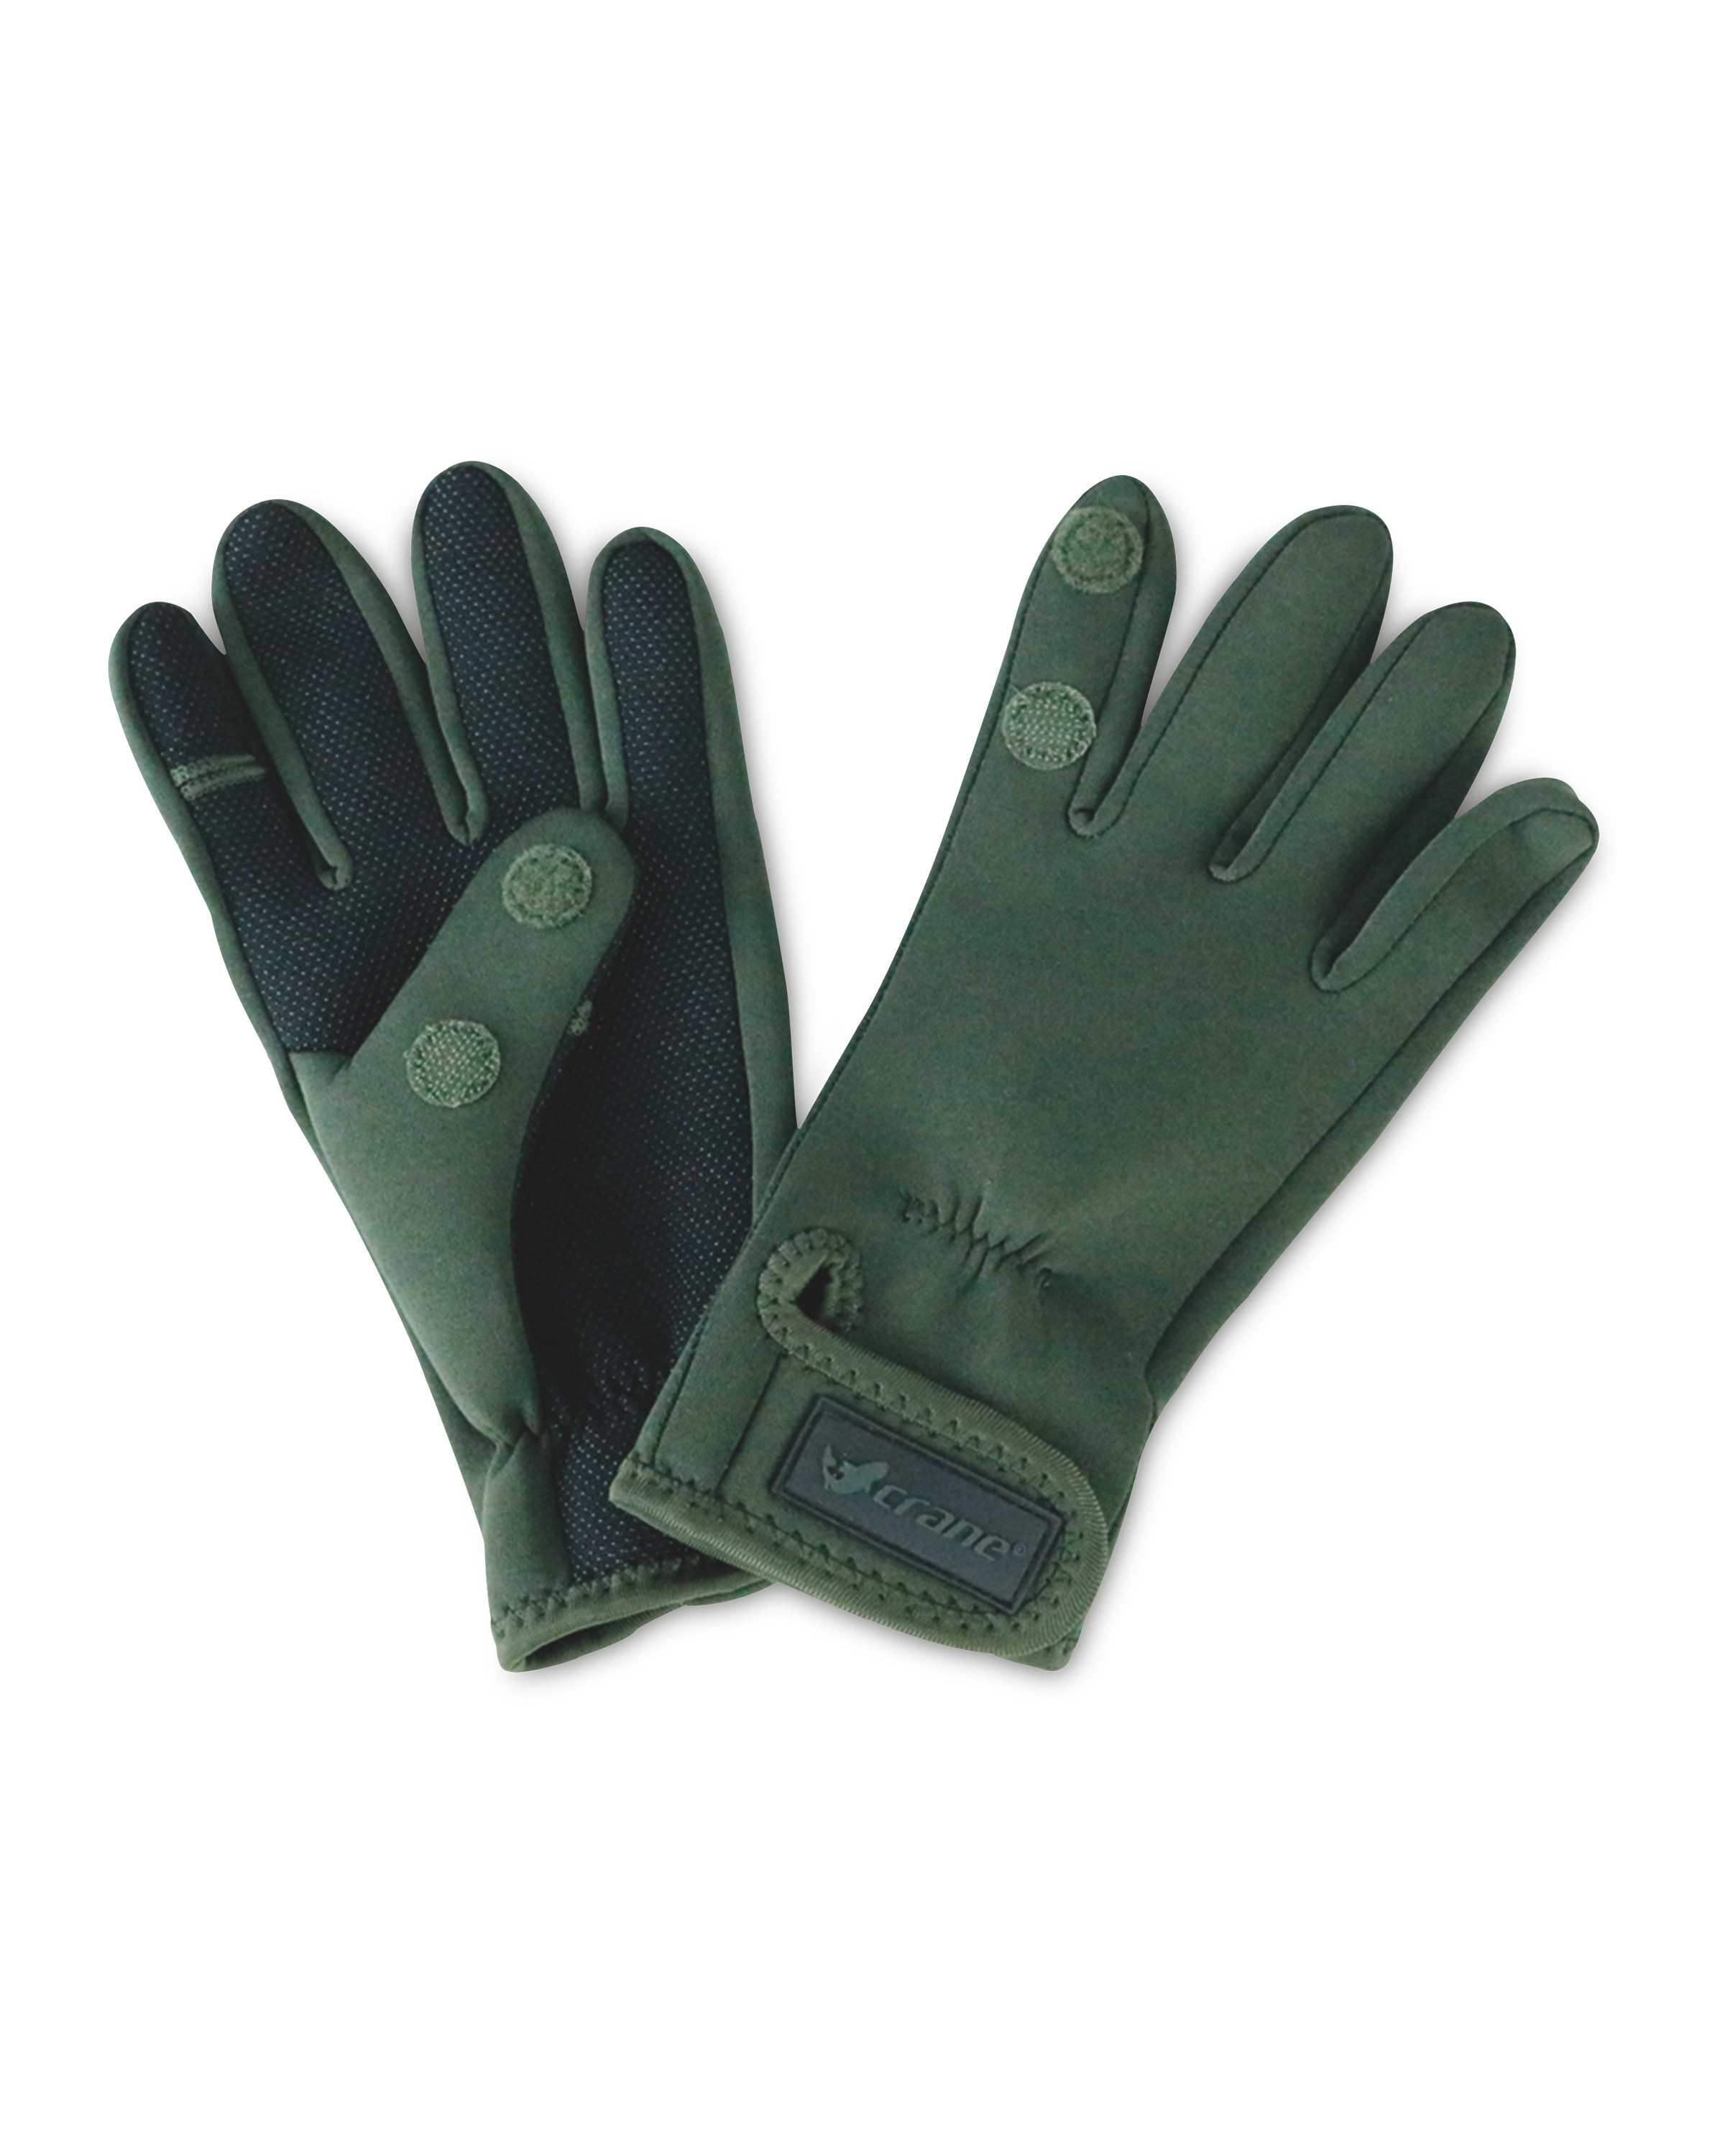 Crane Green One Fold Fishing Gloves